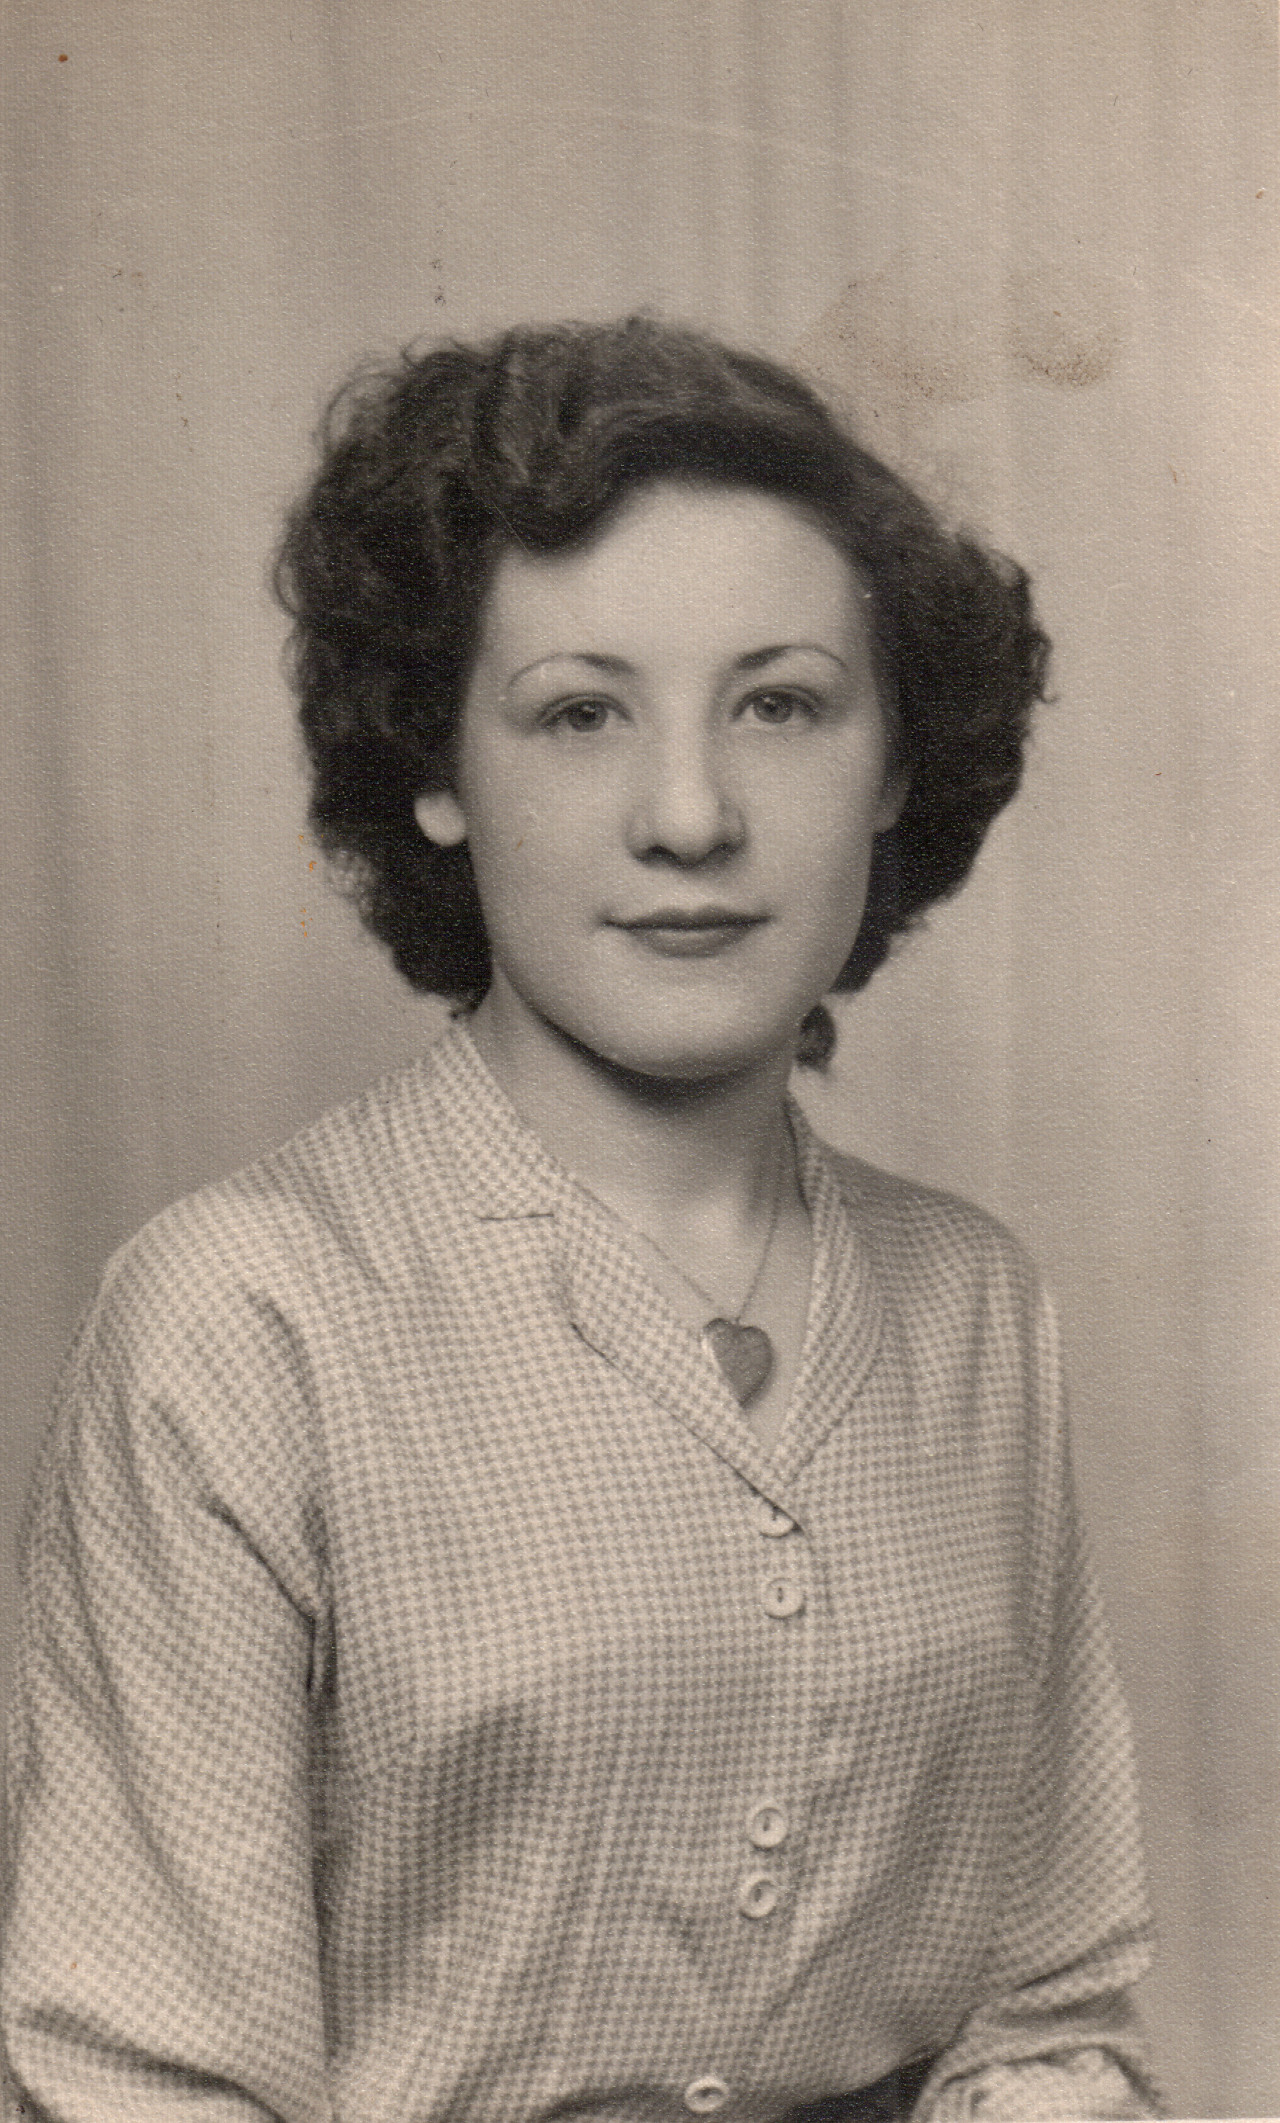 Shirley age 18 in 1952